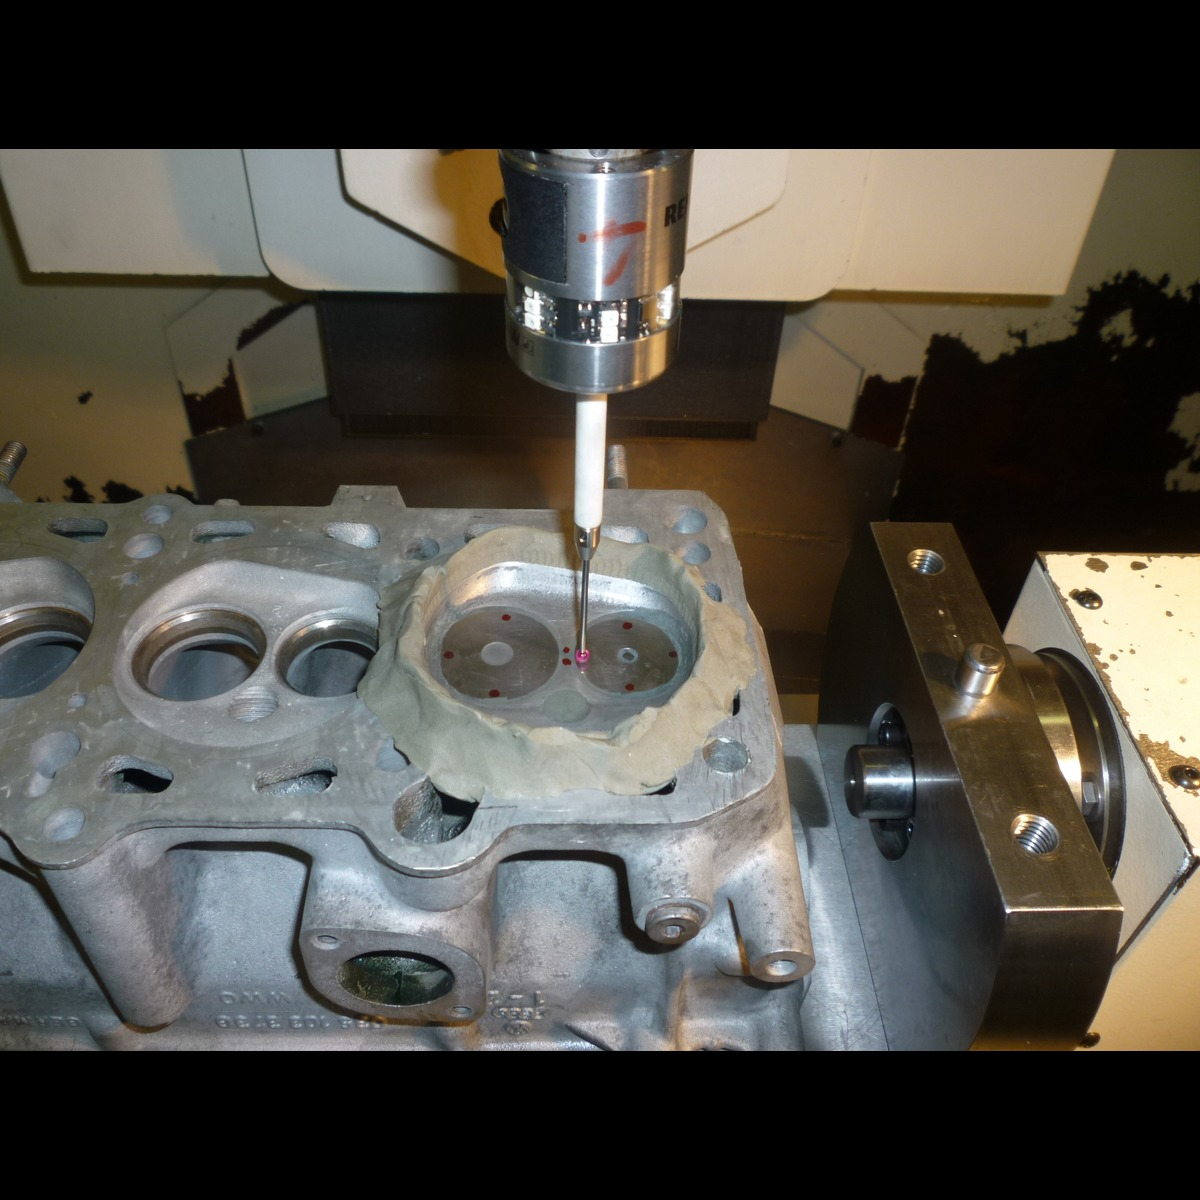 CNC porting machine | Cazzaniga RM - Pure grinding engine